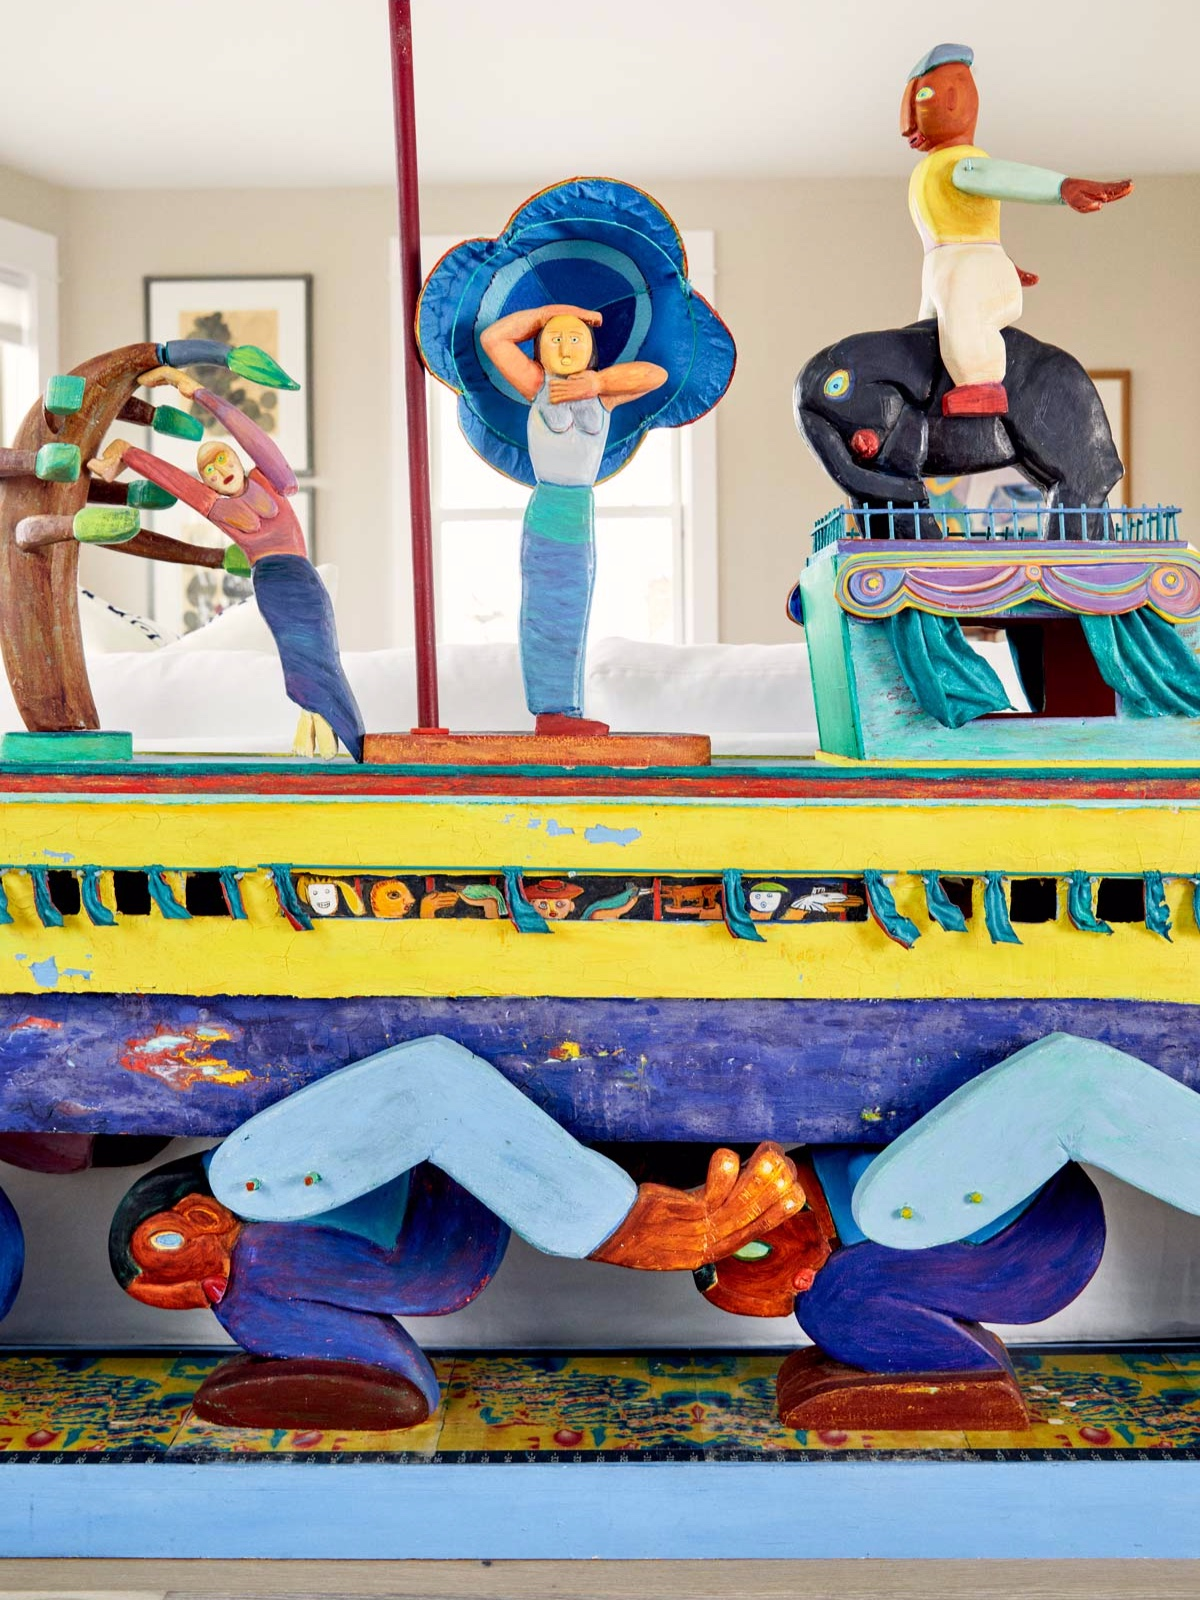 A large, colorful wooden sculpture called  Into the Wind  by Eva Goetz greets you as you enter the living area.